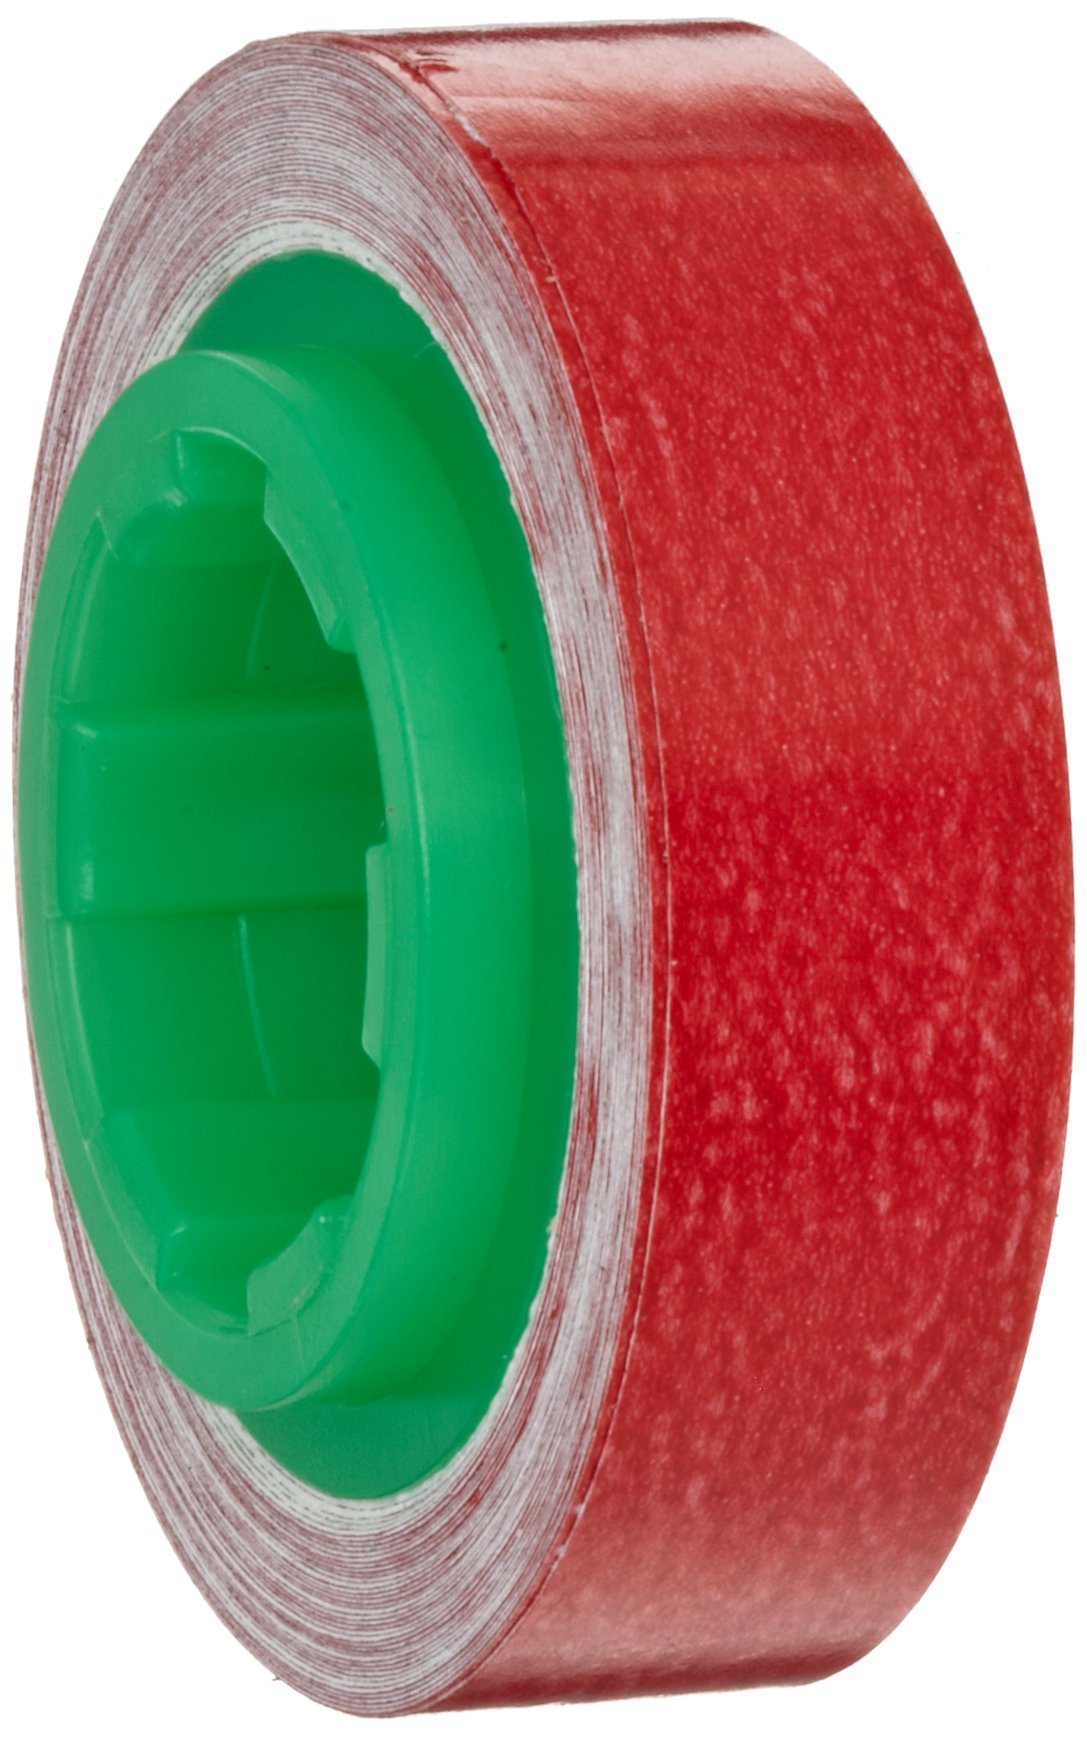 3M Scotch Code Wire Marker Tape Refill Roll SDR-RD, Red